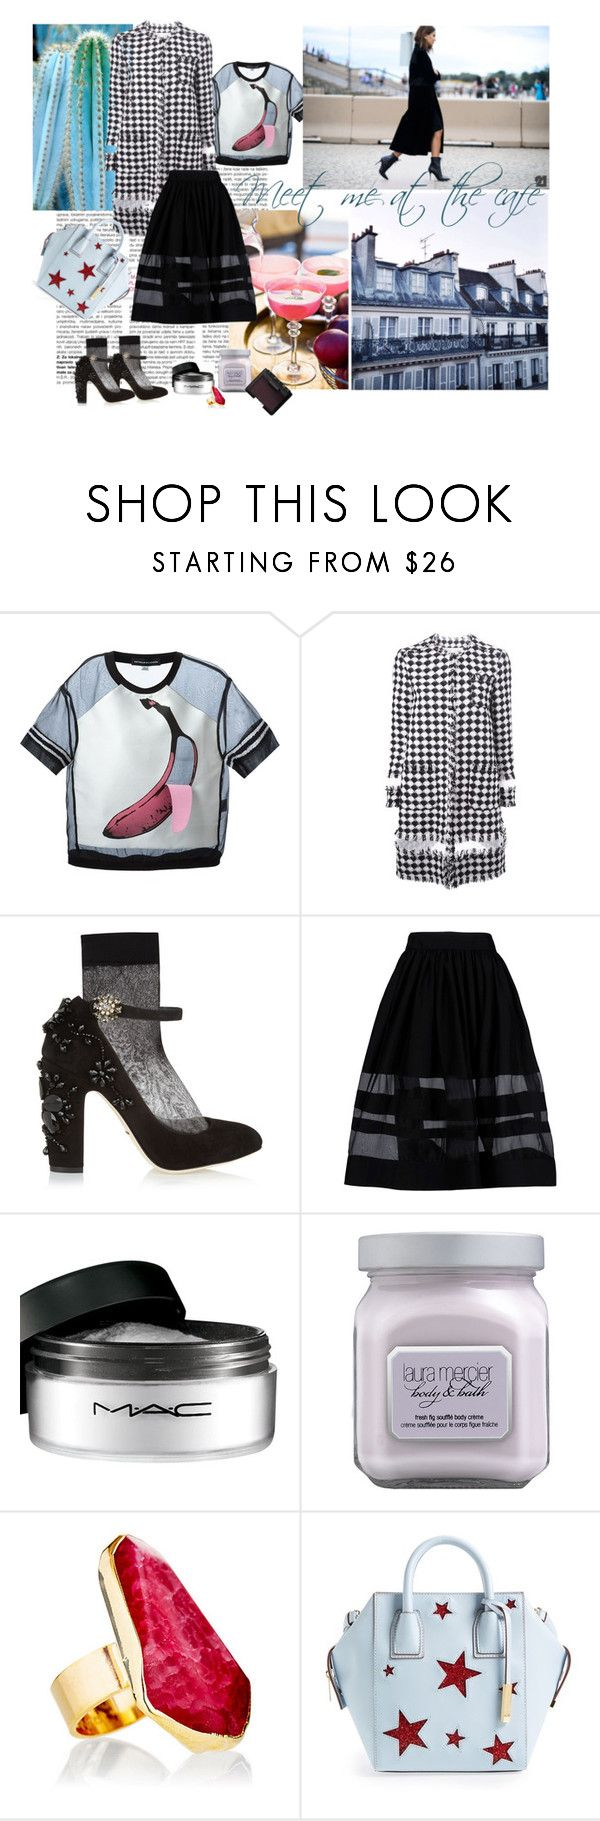 """Sheer luck"" by maiibria ❤ liked on Polyvore featuring Ostwald Helgason, MSGM, Dolce&Gabbana, Alice + Olivia, MAC Cosmetics, Laura Mercier, Janna Conner, STELLA McCARTNEY and NARS Cosmetics"